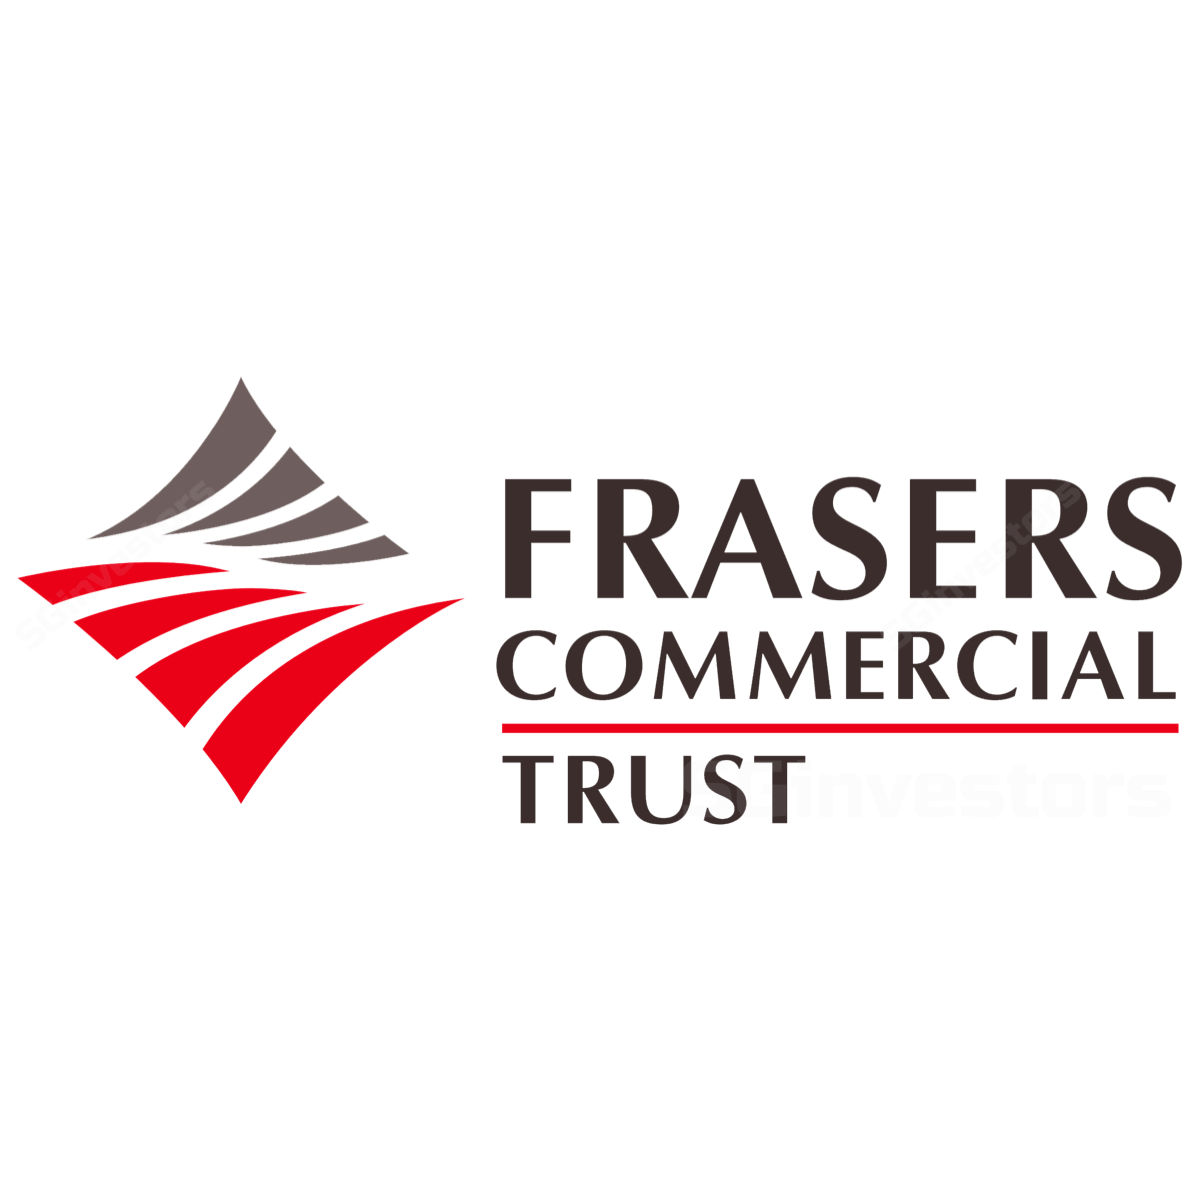 Frasers Commercial Trust - OCBC Investment 2018-04-05: Riding The Cyclical Coattails